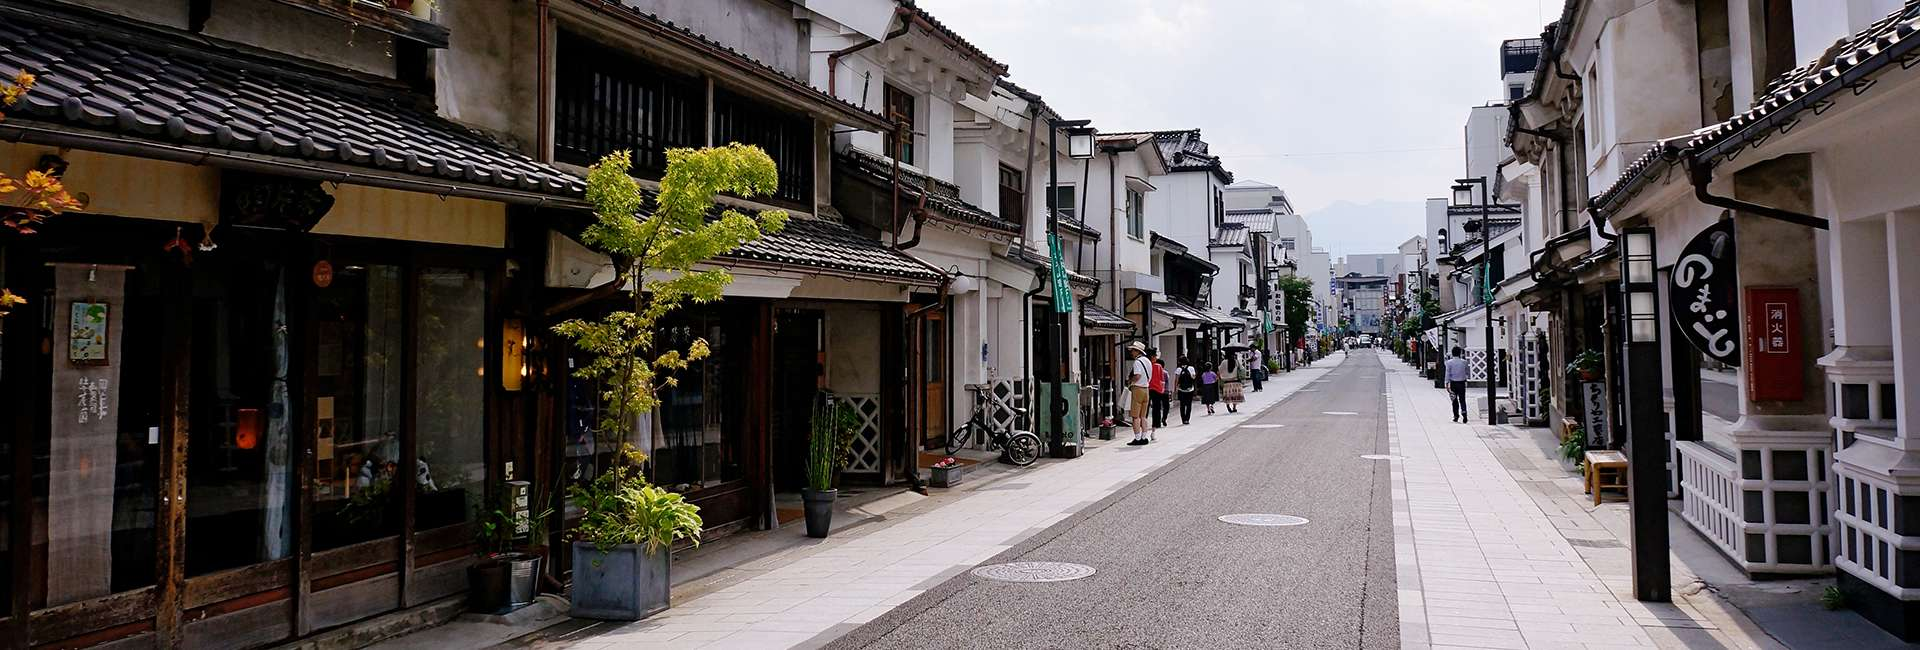 a street in Matsumoto